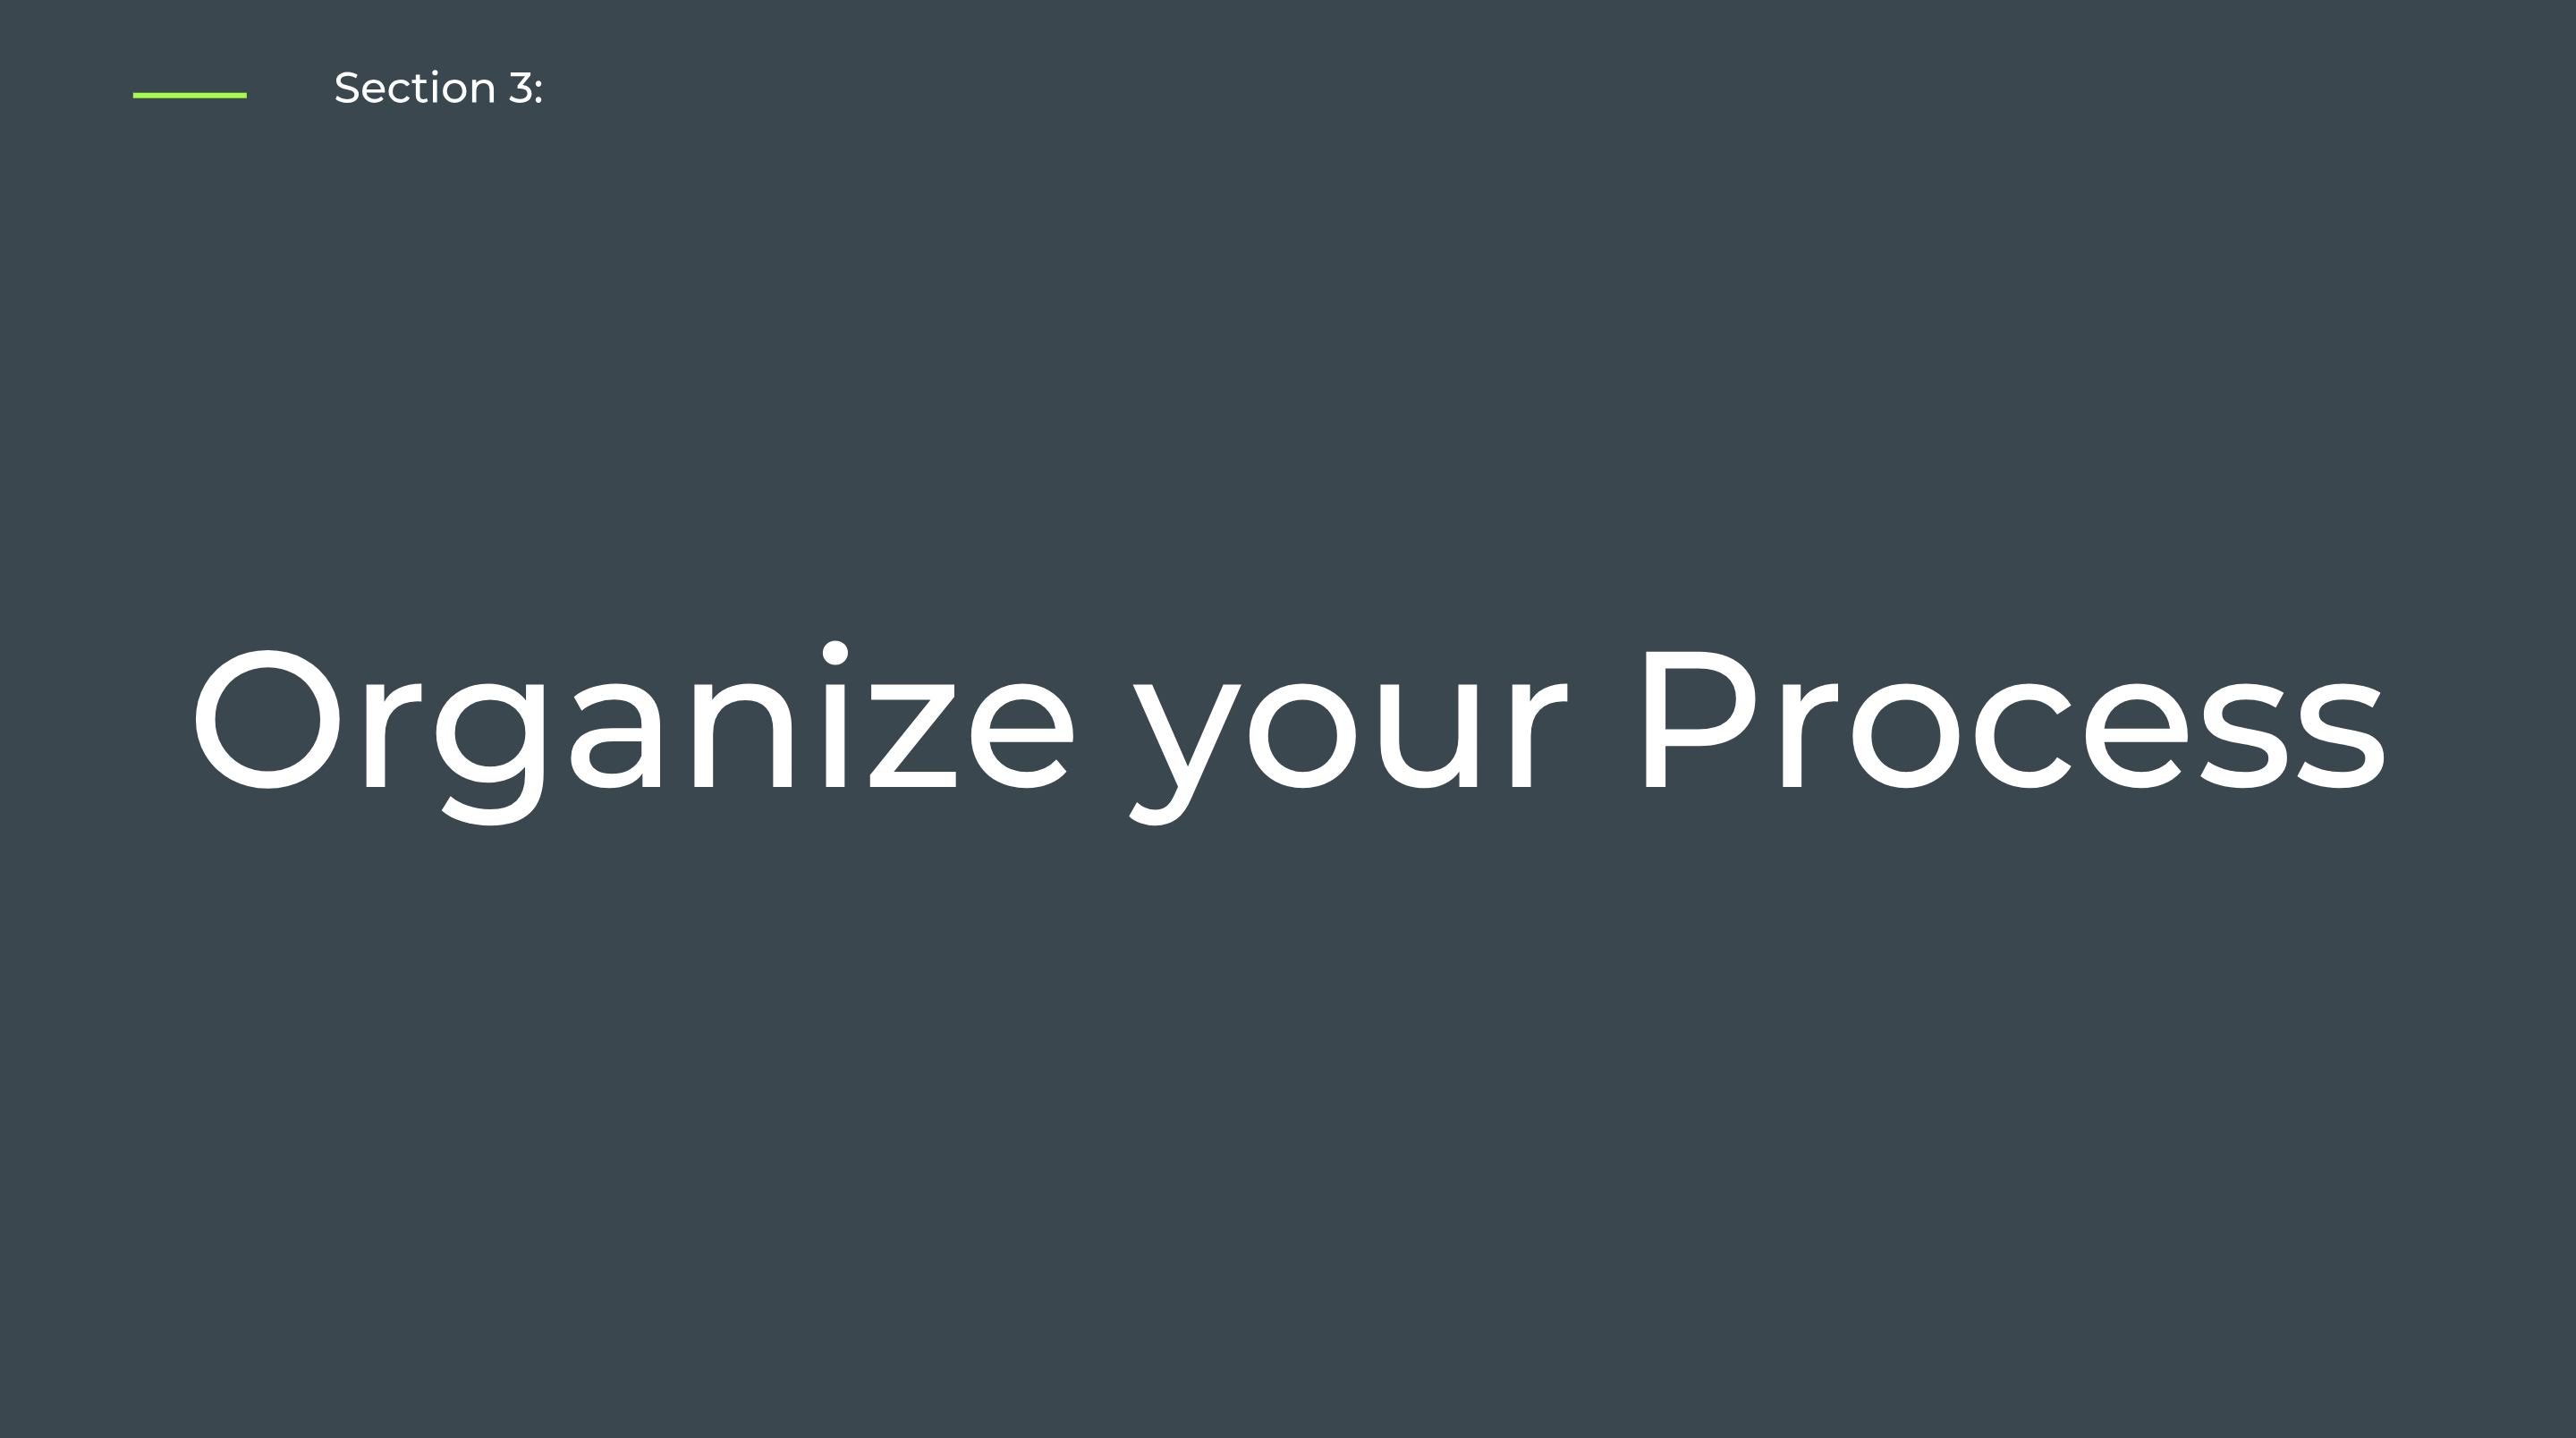 Section 3: Organize your Process - Self-Paced Onboarding for Admins